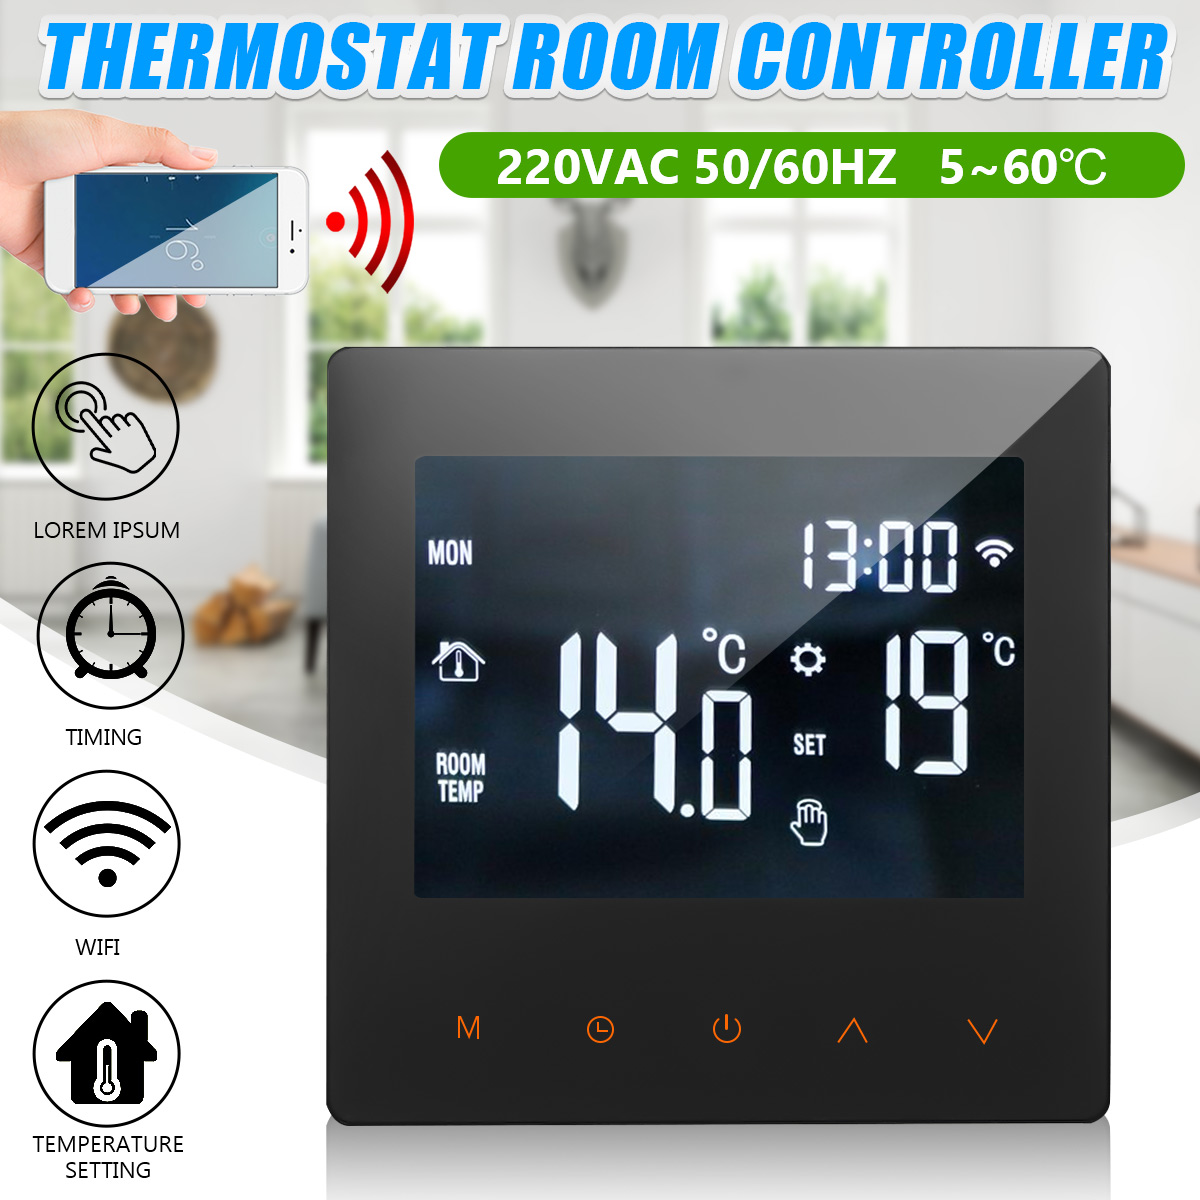 Becornce 220V 50/60HZ Smart Digital WiFi Temperature Controller Water Floor Heating Touch Screen Thermostat Room Controller